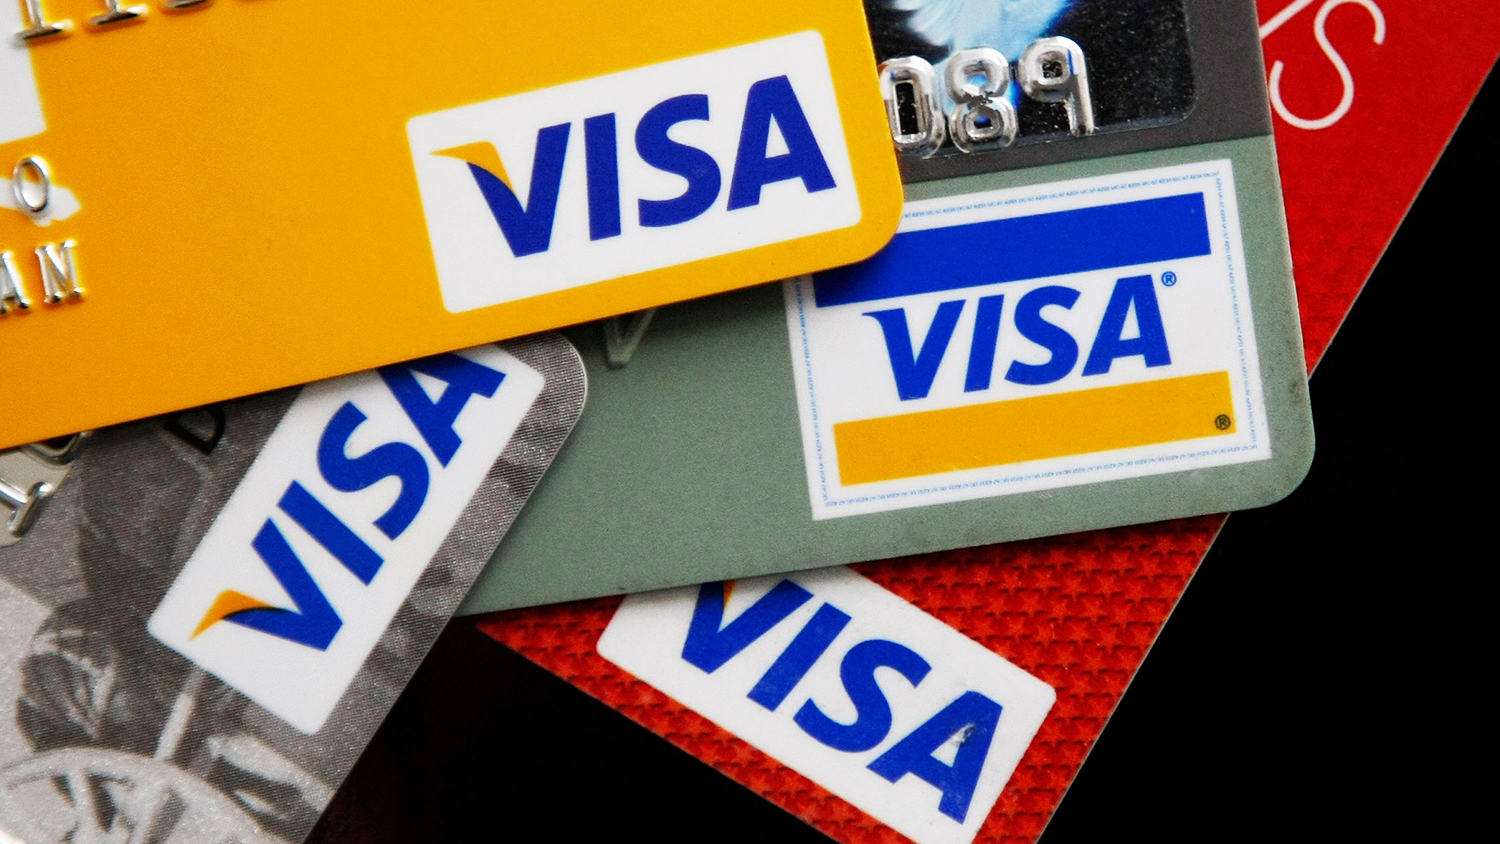 visa pays for cashless